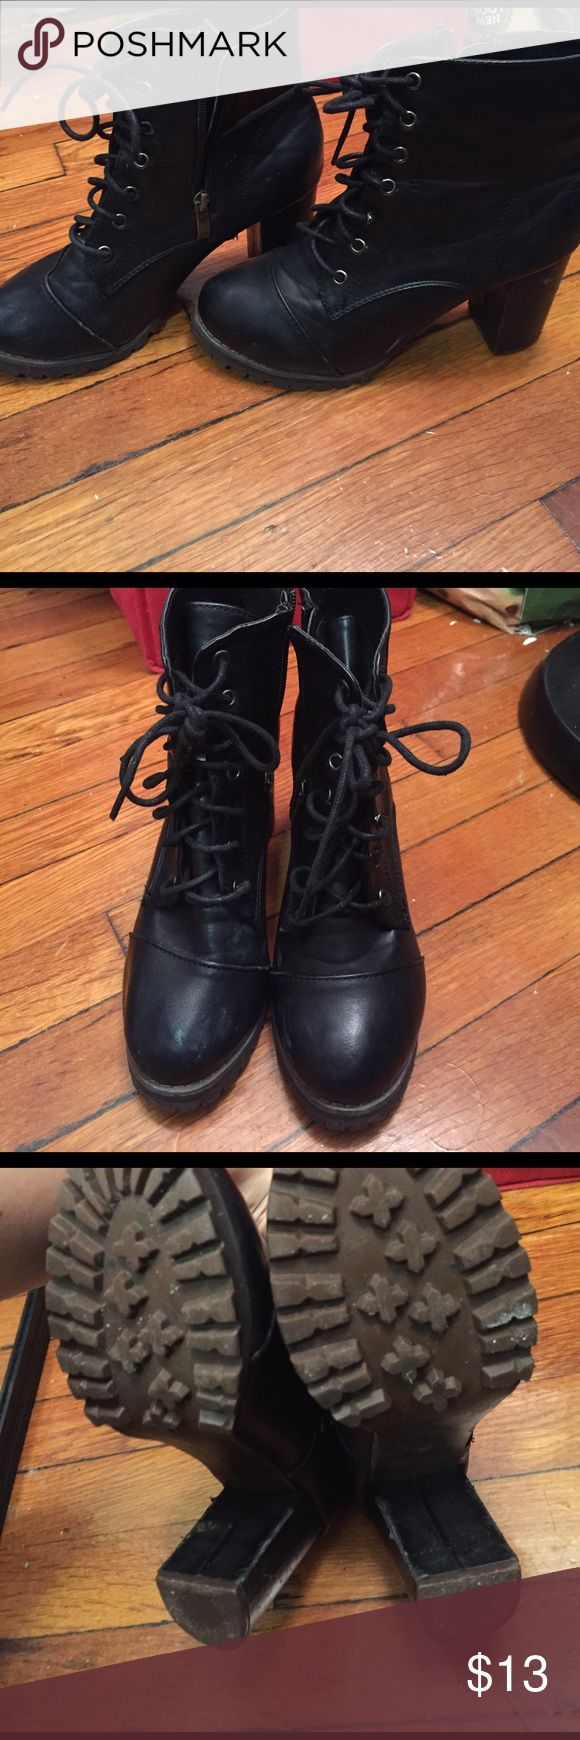 Chunky combat boot style heels Pre loved with life to spare! Super cute and sturdy! Great grip on bottoms! Worn last season only! Not Steve Madden bought at a boutique Steve Madden Shoes Combat & Moto Boots